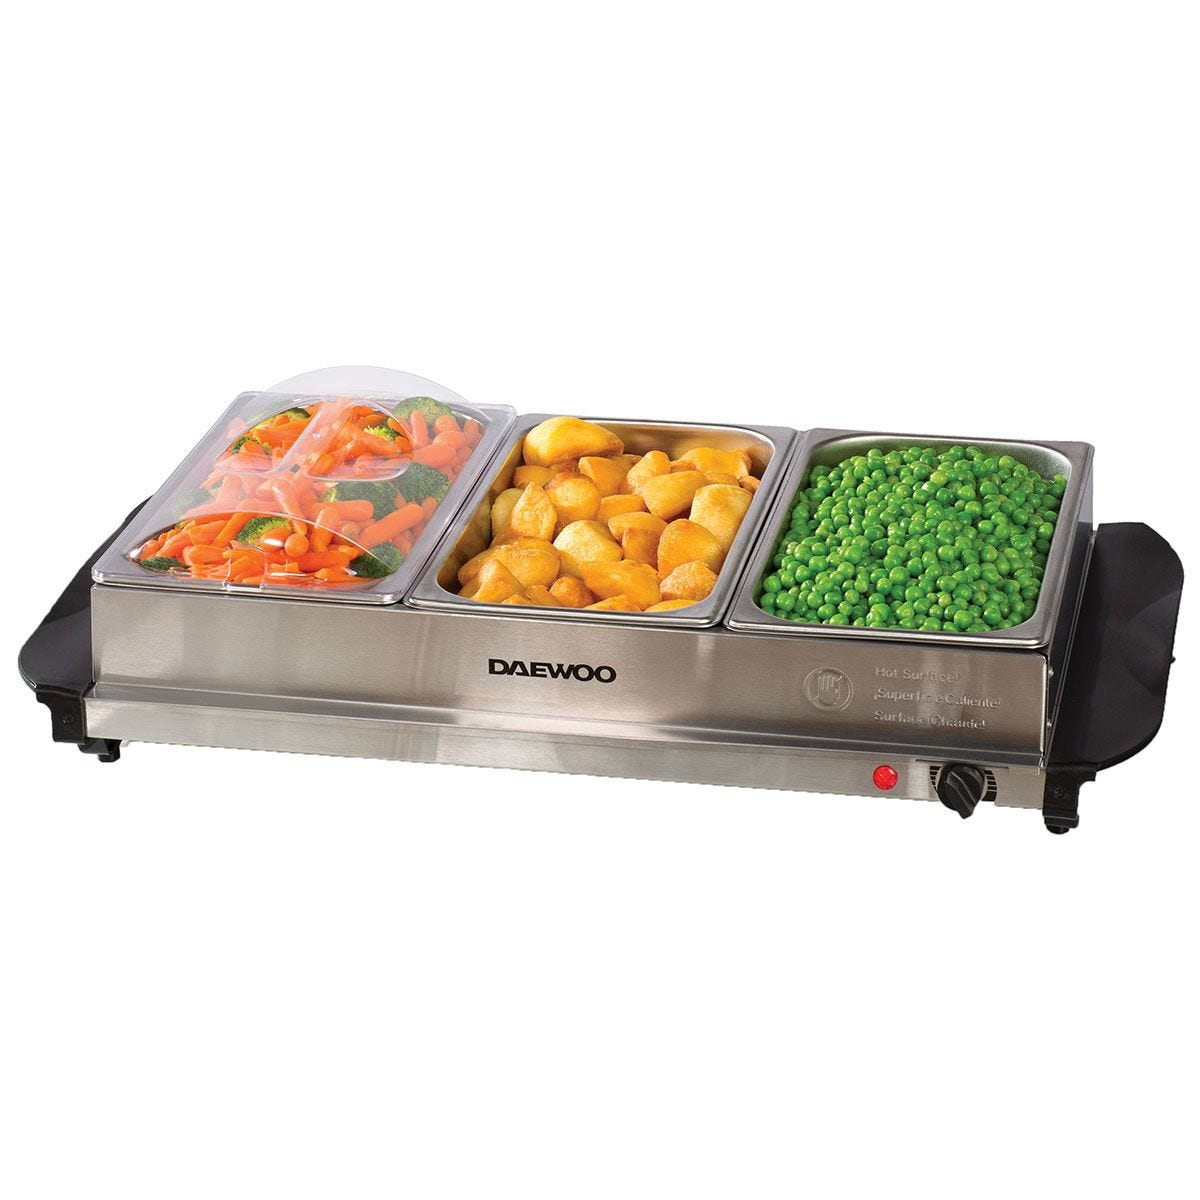 Daewoo SDA1445 Large Buffet Server 300W Food Warmer – Stainless Steel